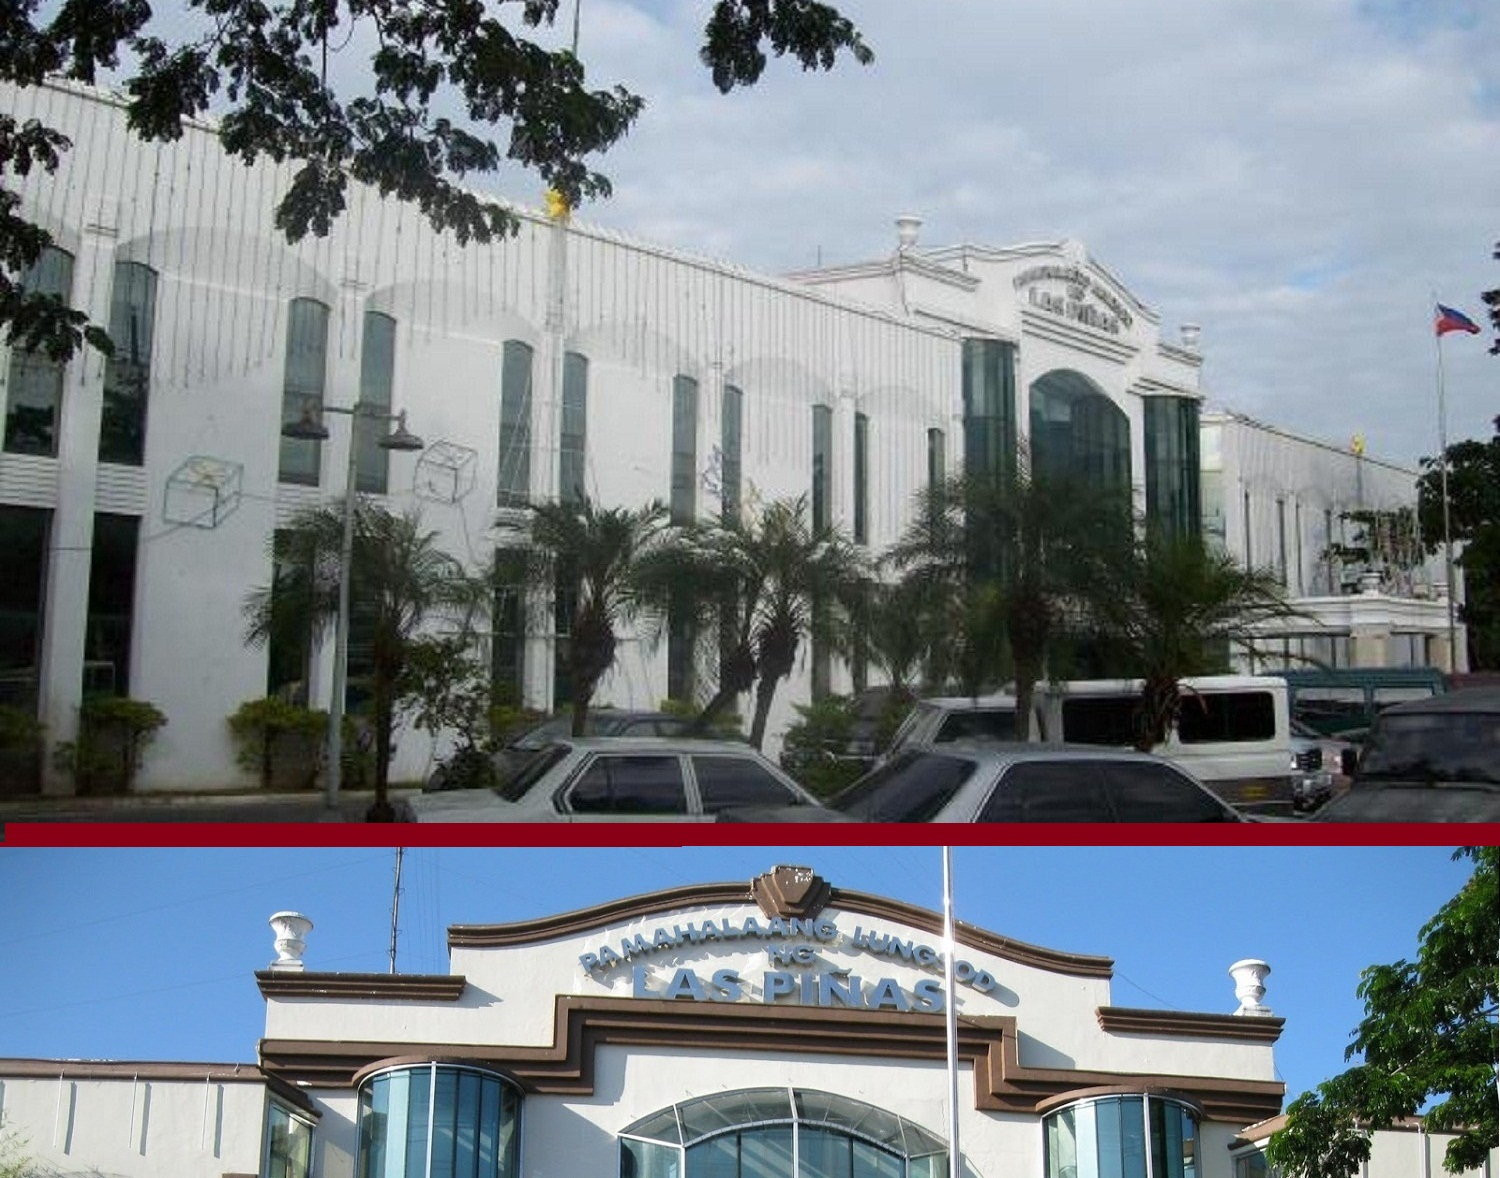 las pinas city girls The city of las piñas is one of the cities that can be found in the national capital region the city has many nicknames such as home of the bamboo organ, city of love and progress, salt center of metro manila, and the lantern capital of metro manila.